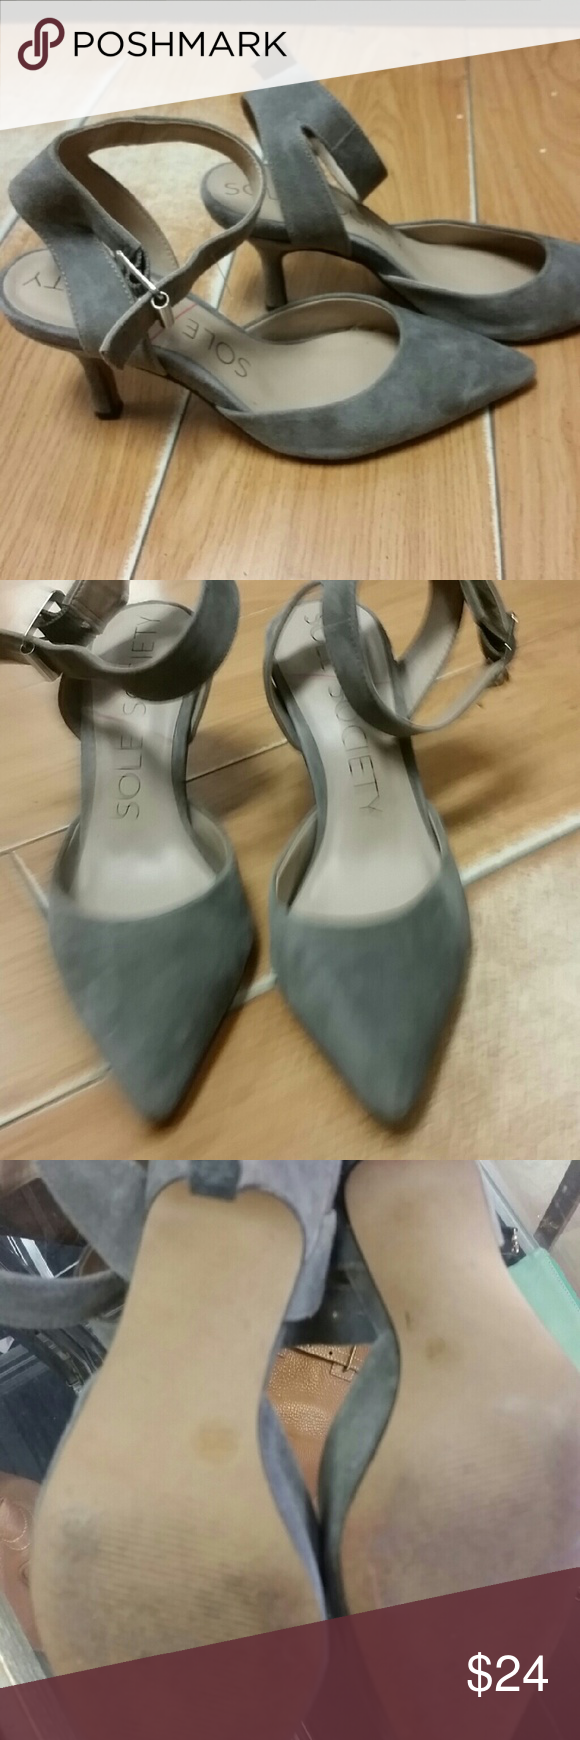 Sole society heels These suede shoes are the cutest ever! Heel: 2.5 inches Sole Society Shoes Heels